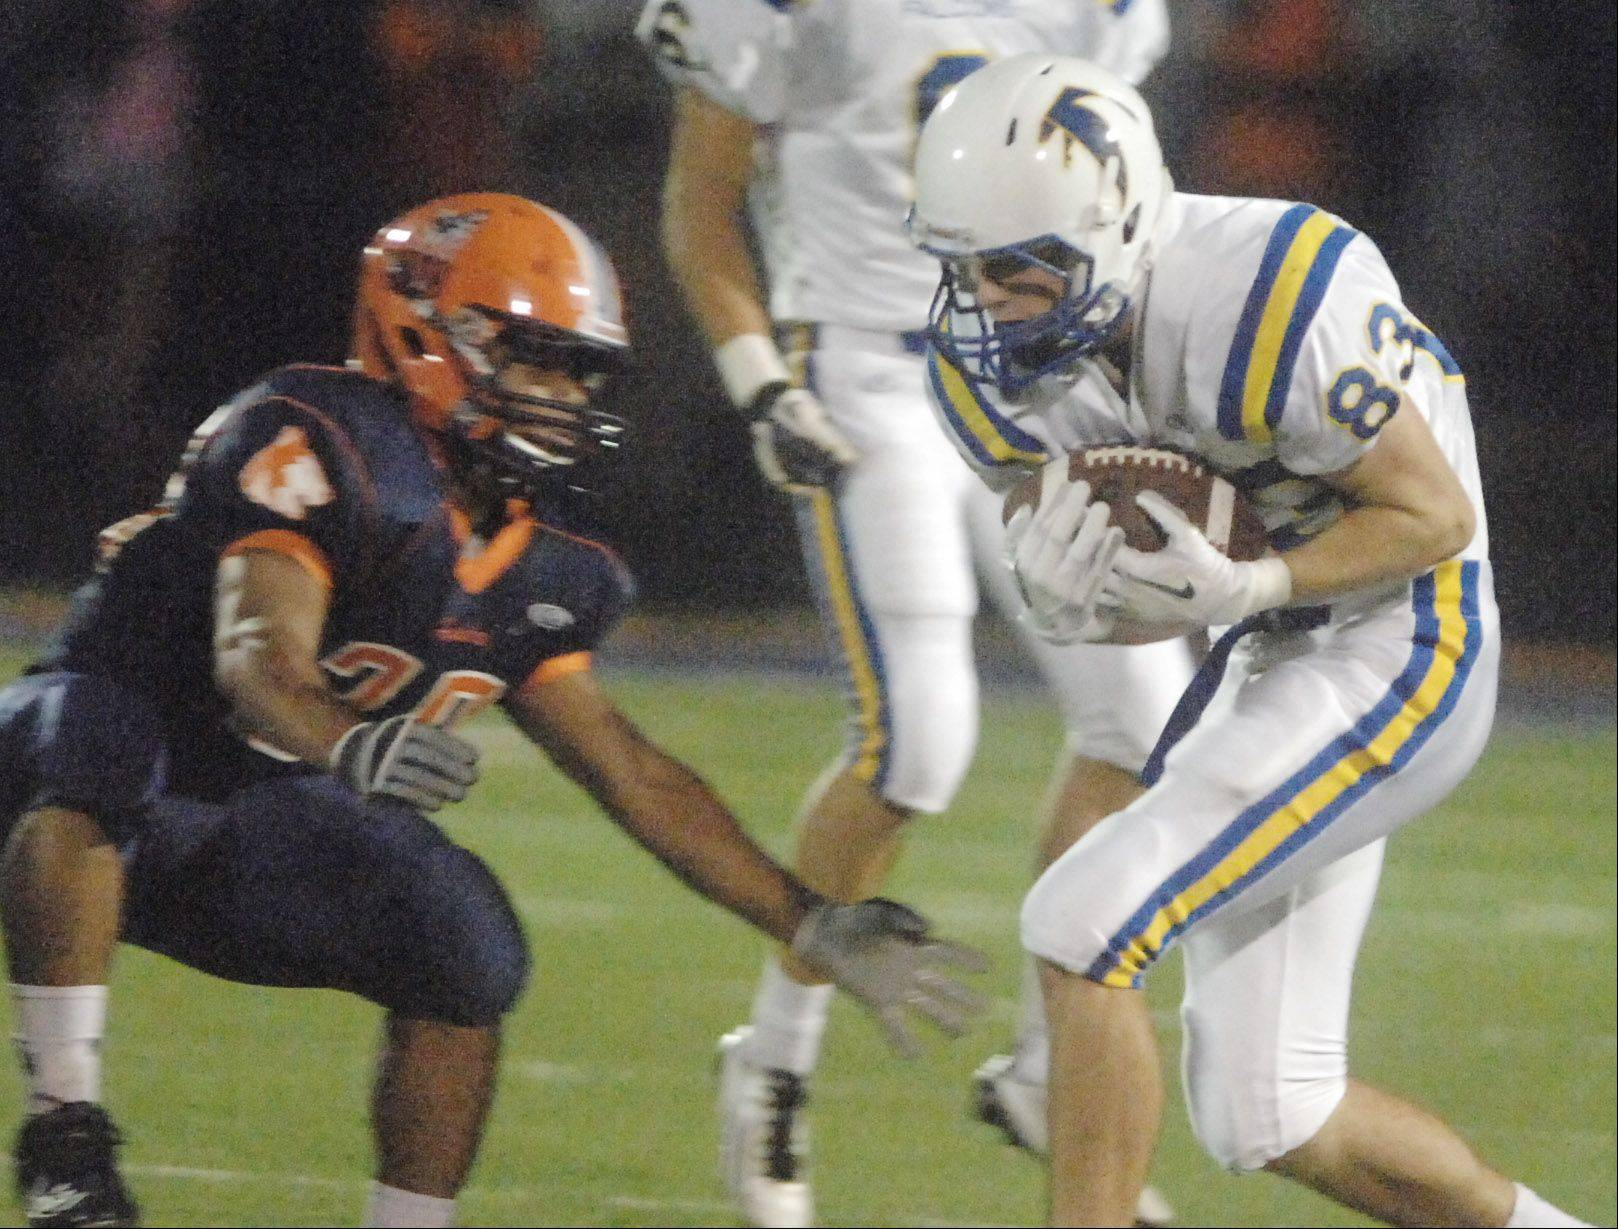 Rashad Crosby of Naperville North,left, gets ready to hit Matt Biegalski of Wheaton North Friday night in Naperville.